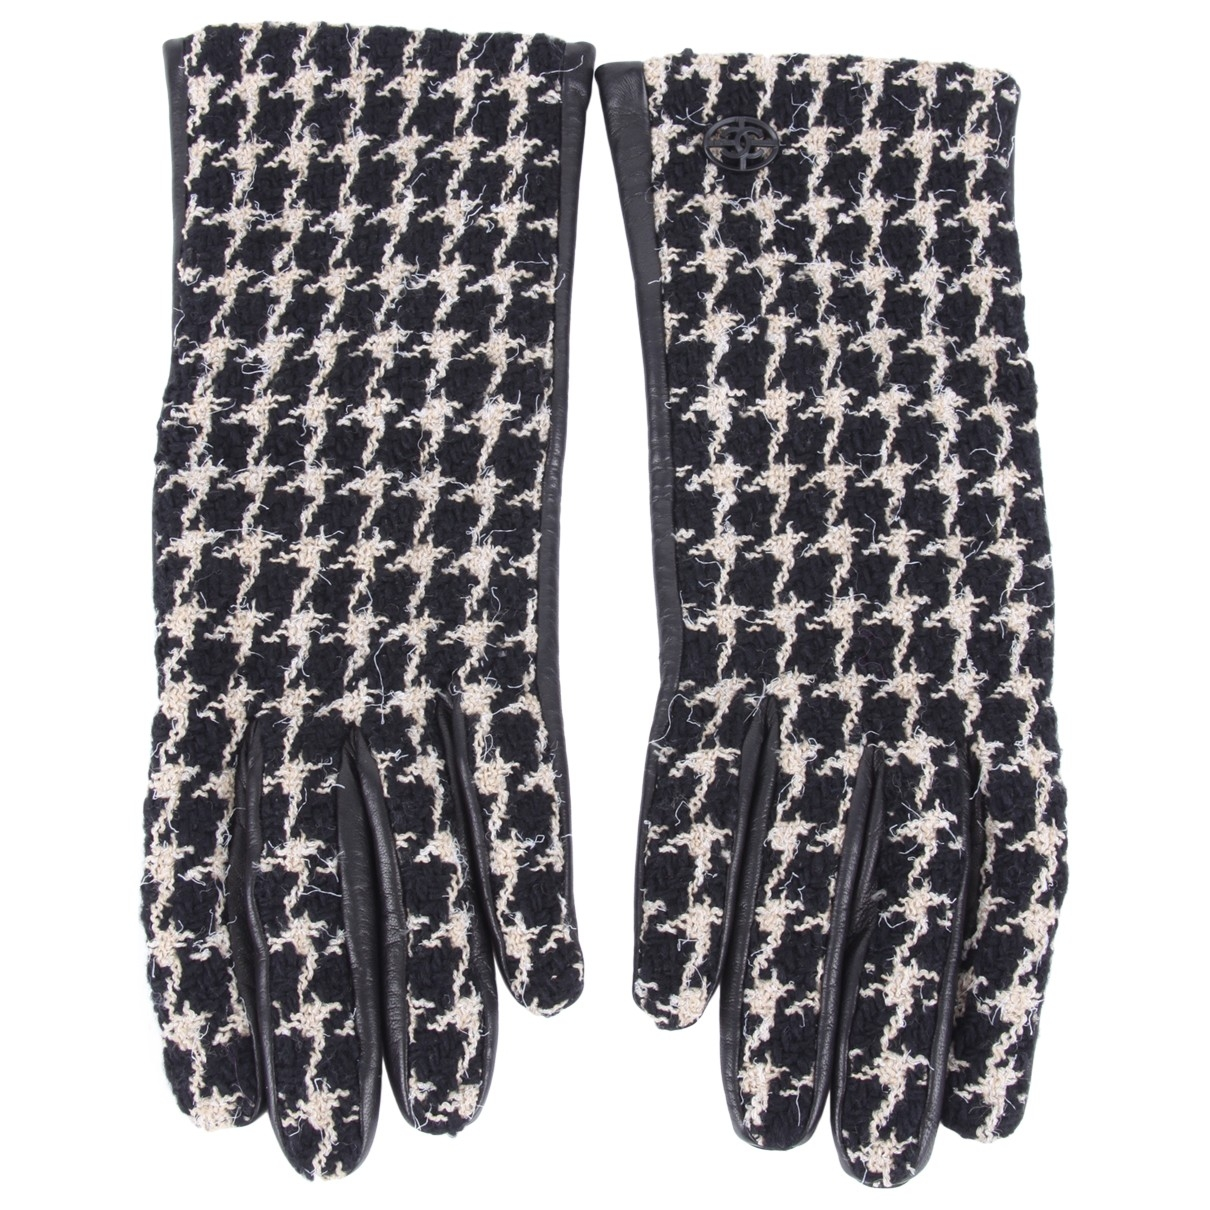 Chanel \N Black Tweed Gloves for Women S International